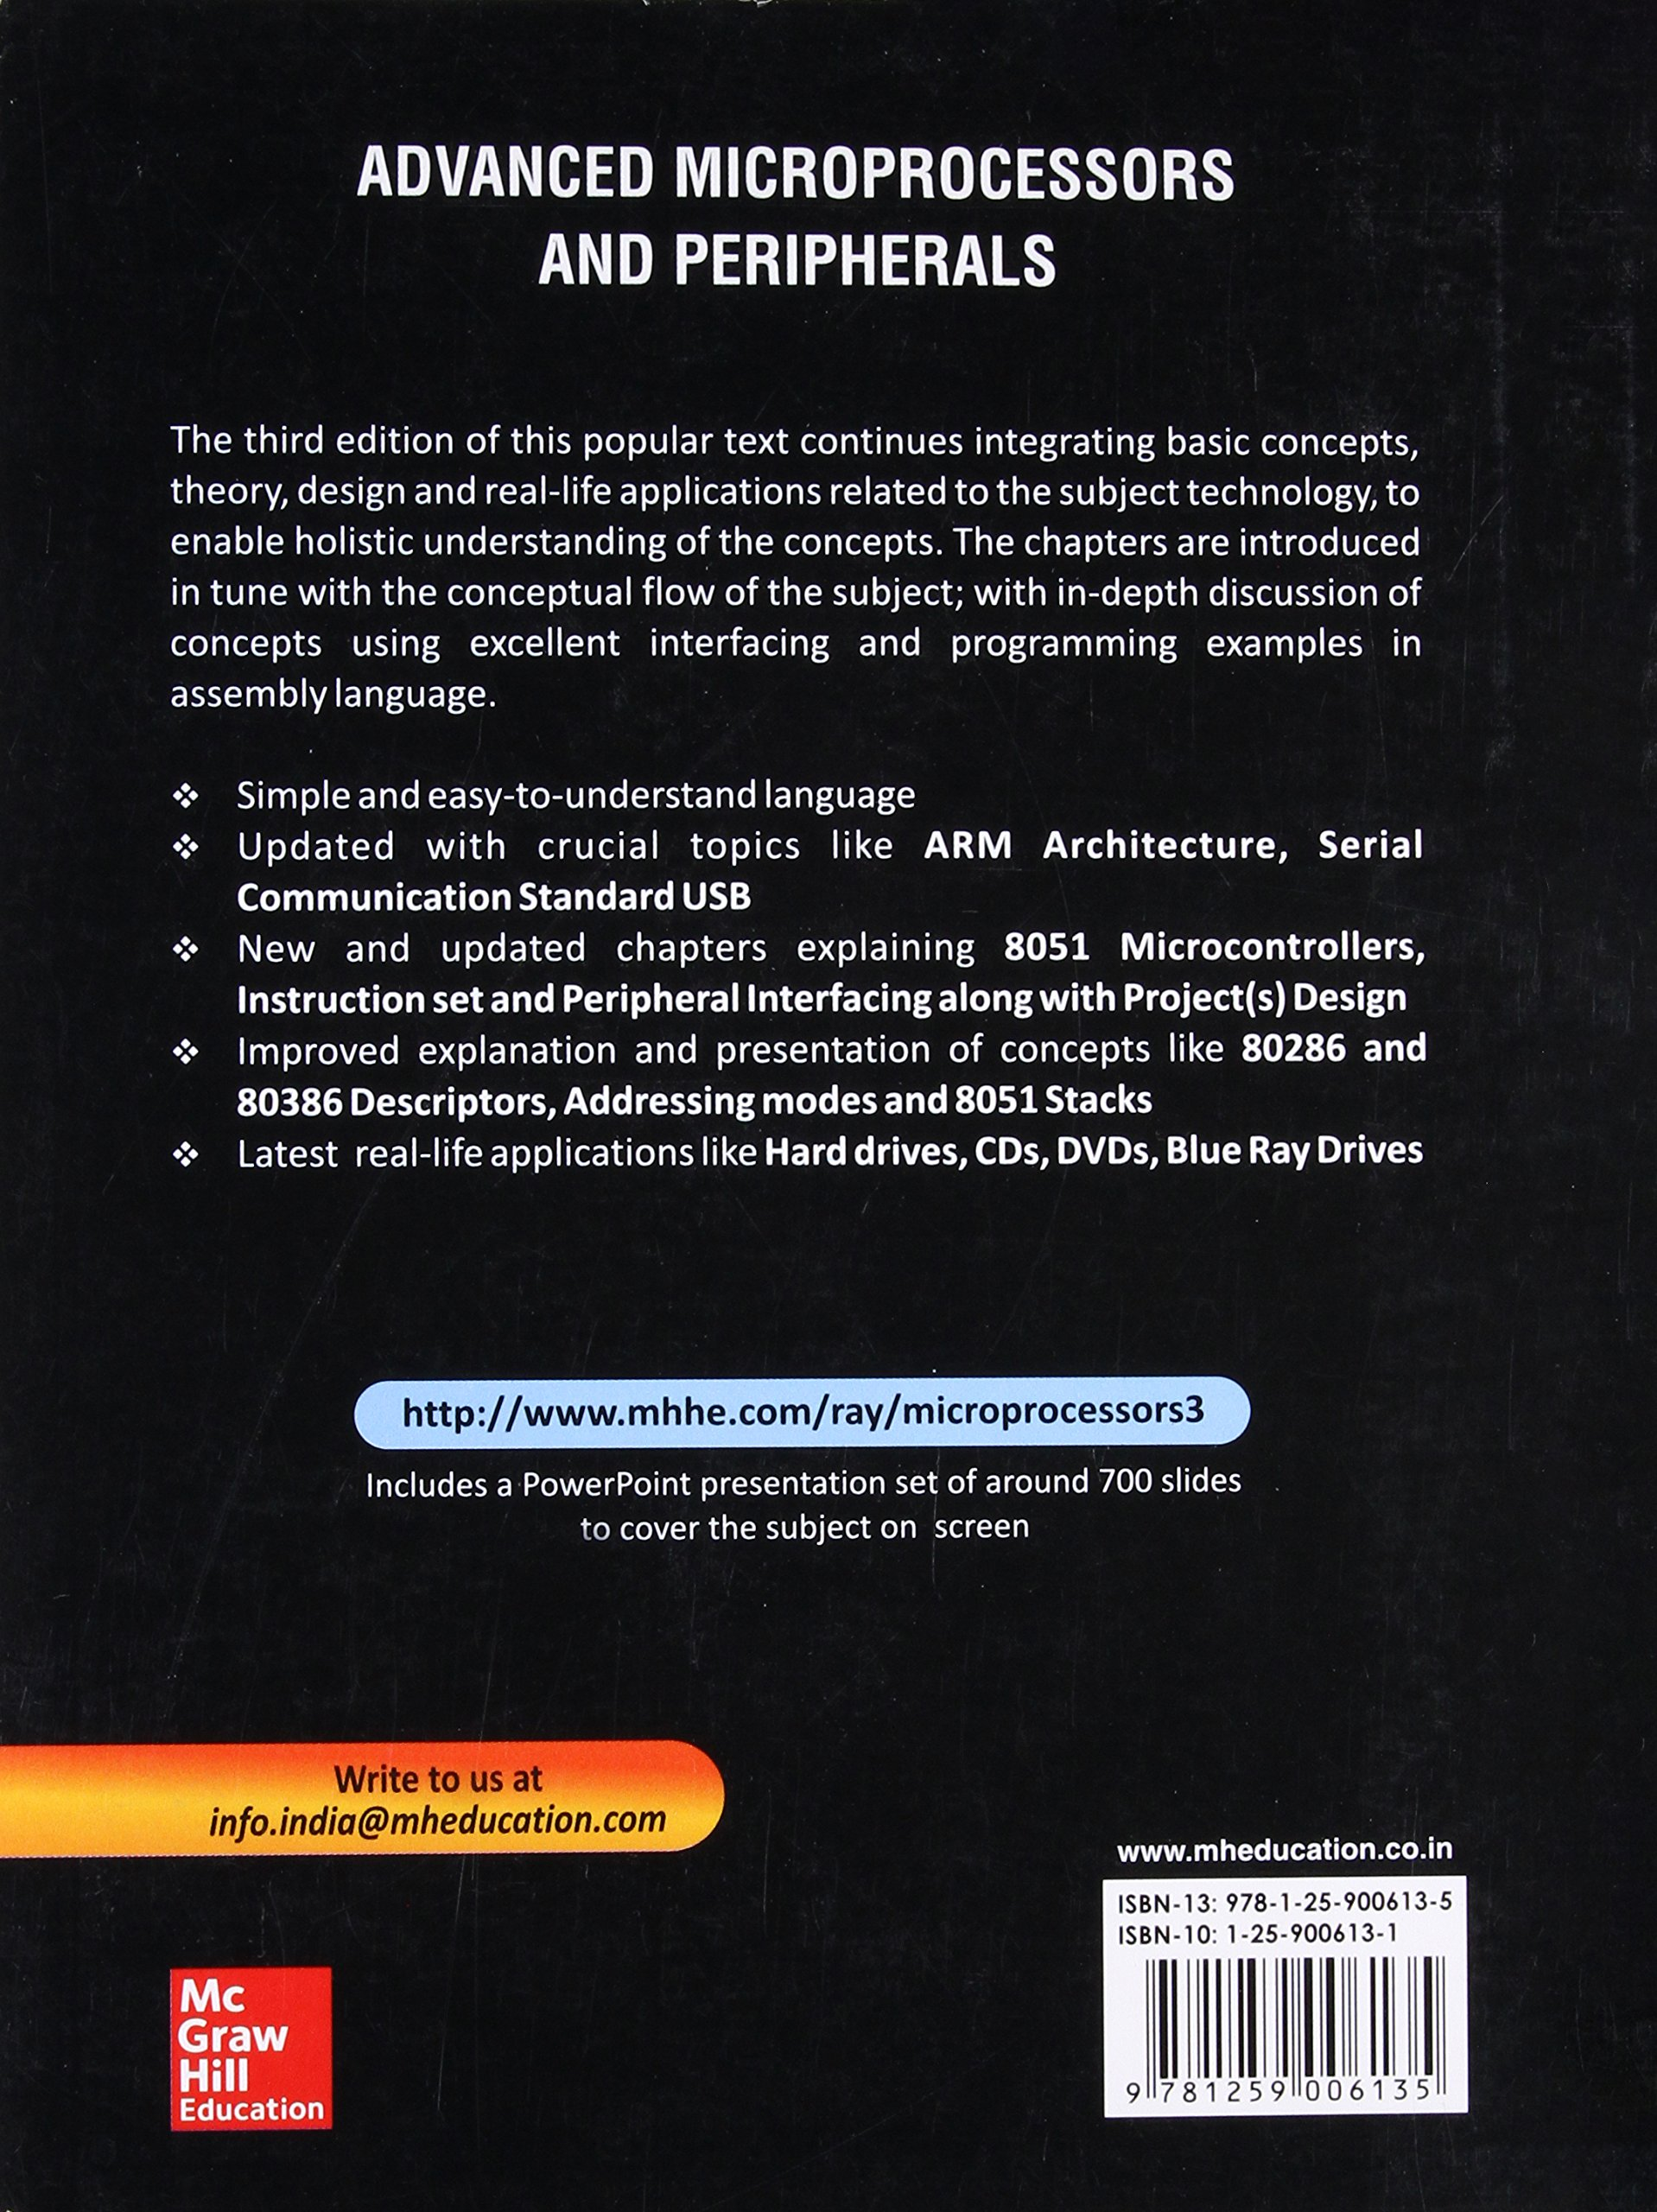 Advanced Microprocessors and Peripherals, 3nd ed : Amazon co uk: A K